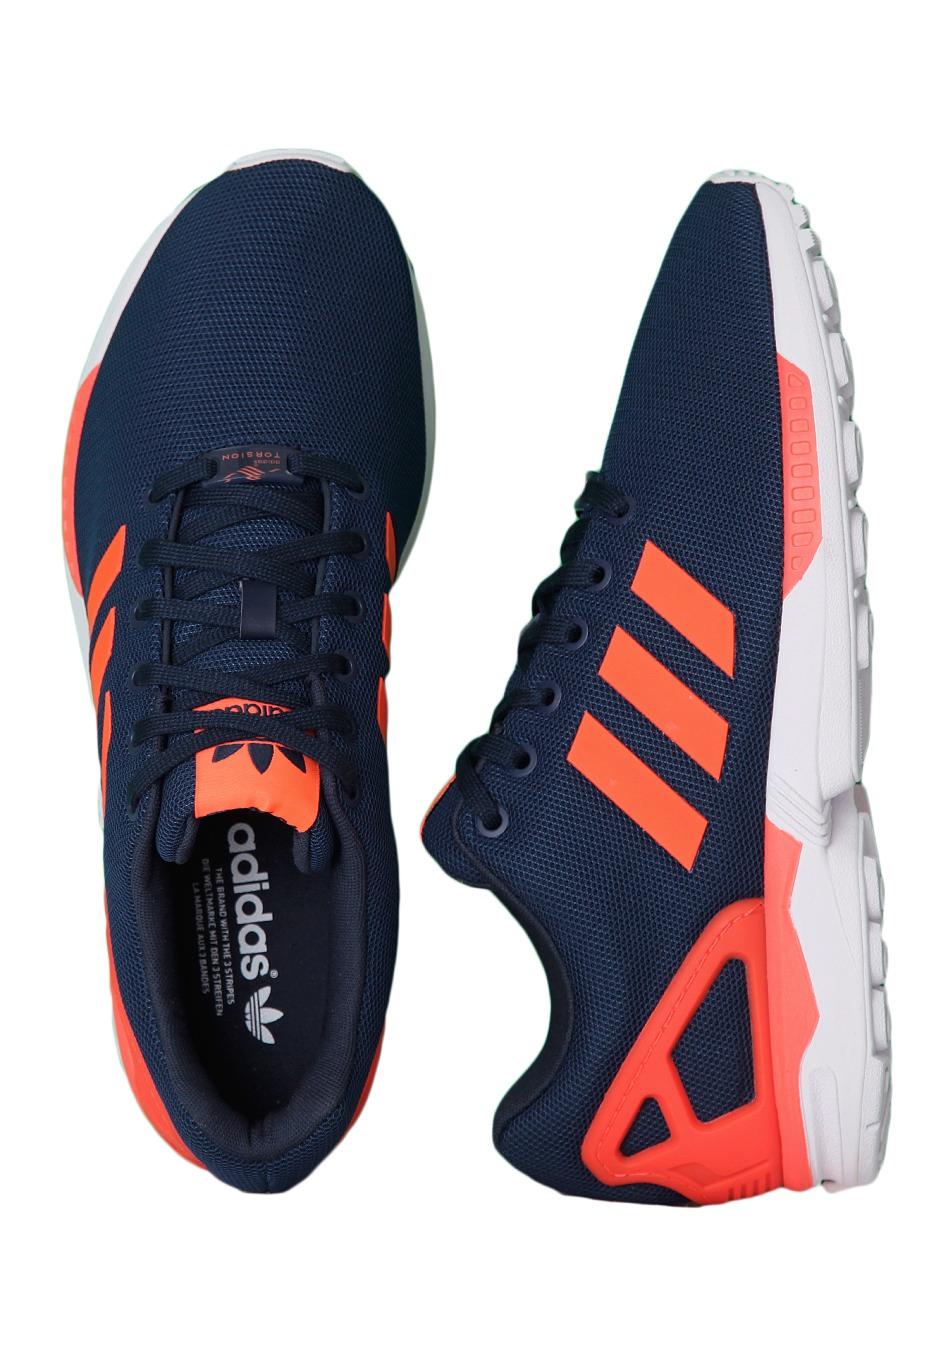 Adidas - ZX Flux New Navy Infrared Running White - Shoes - Impericon.com  Worldwide f8e7157af